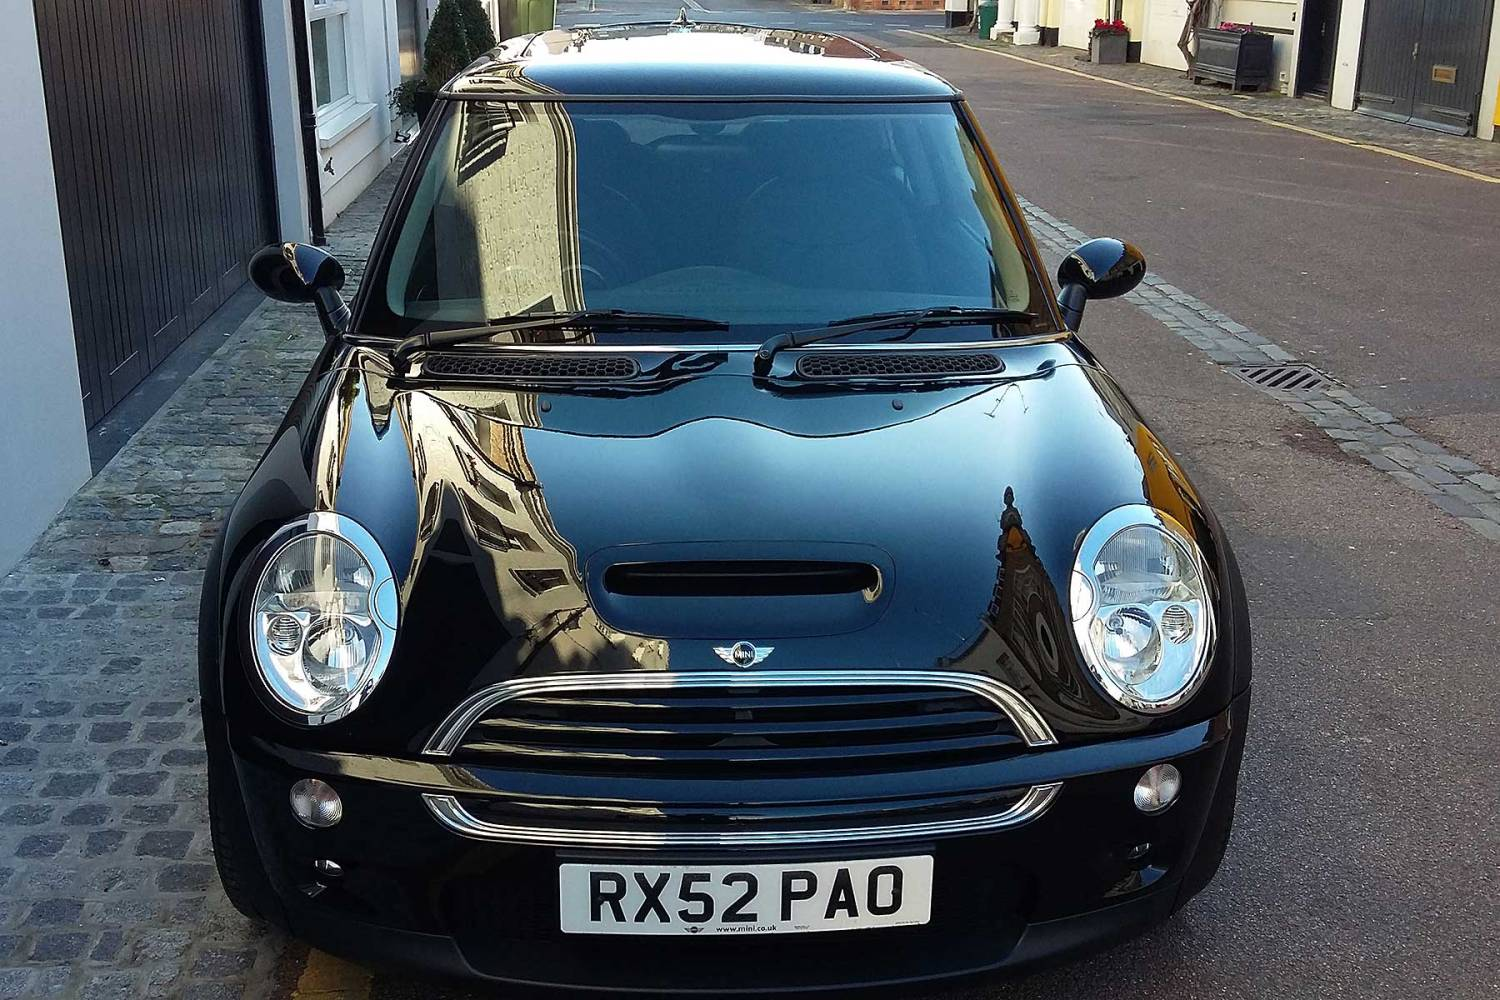 Madonna Mini Cooper S for sale